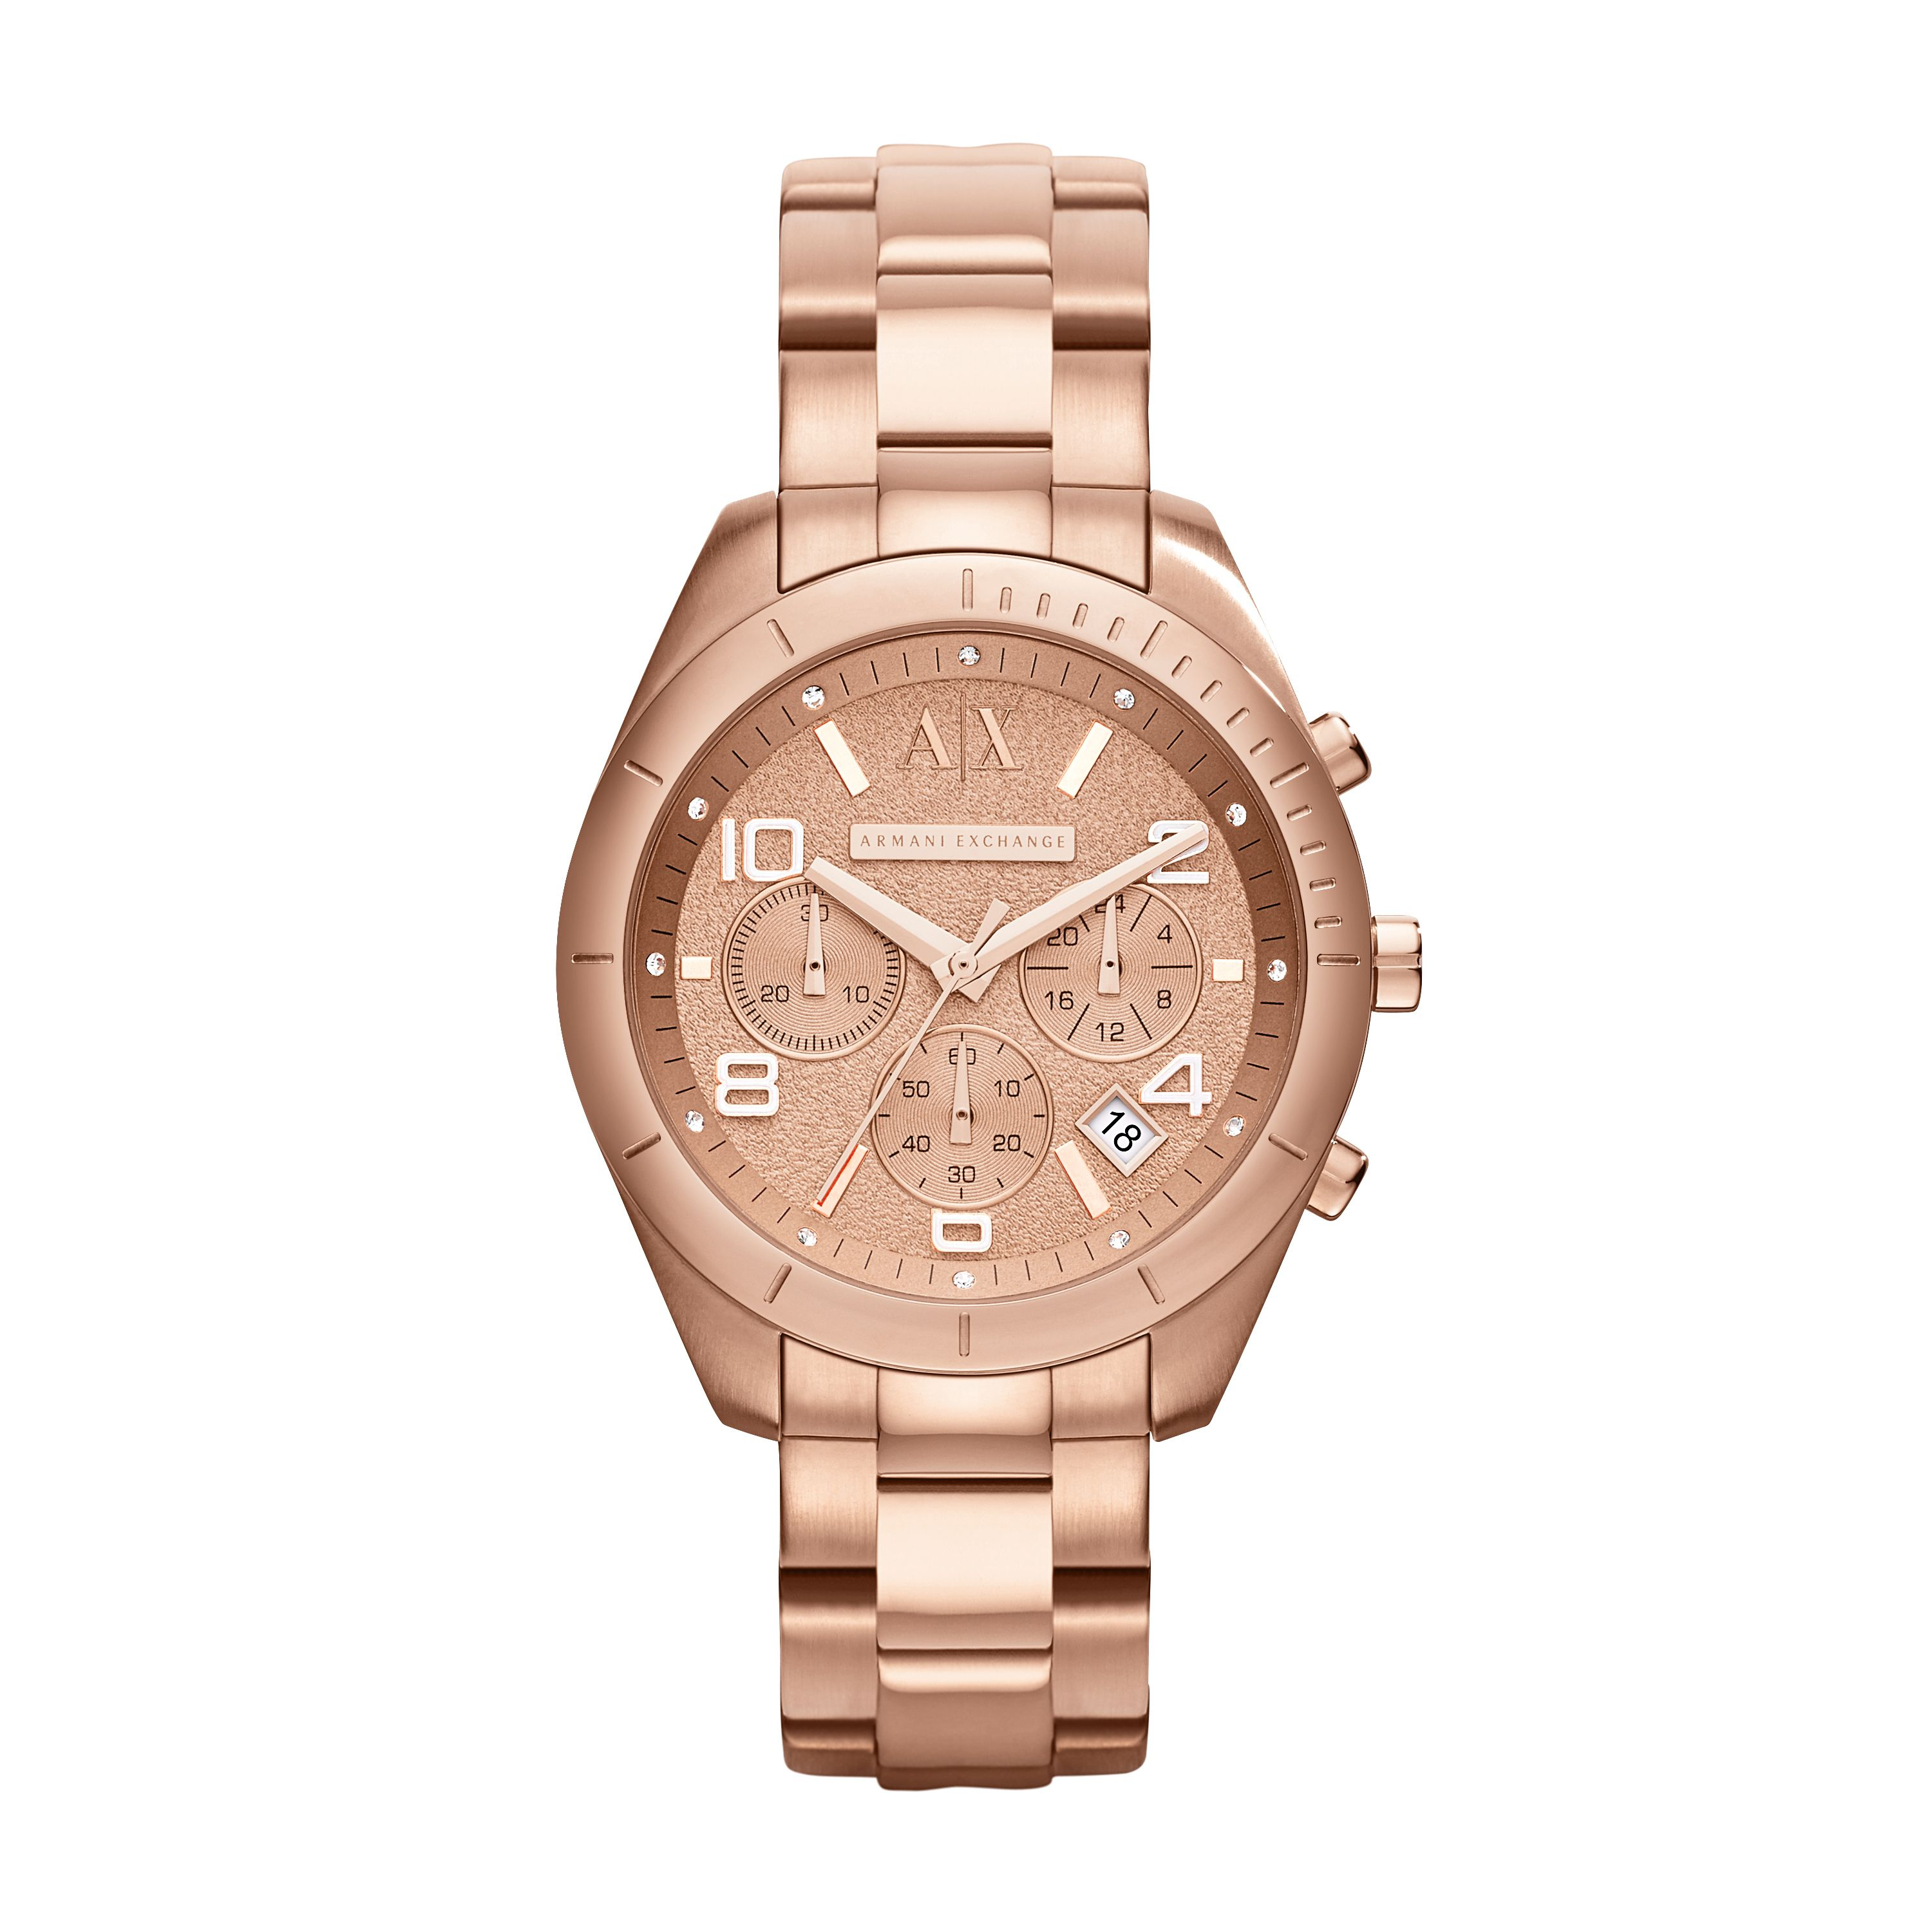 AX5501 ACTIVE stainless steel ladies watch